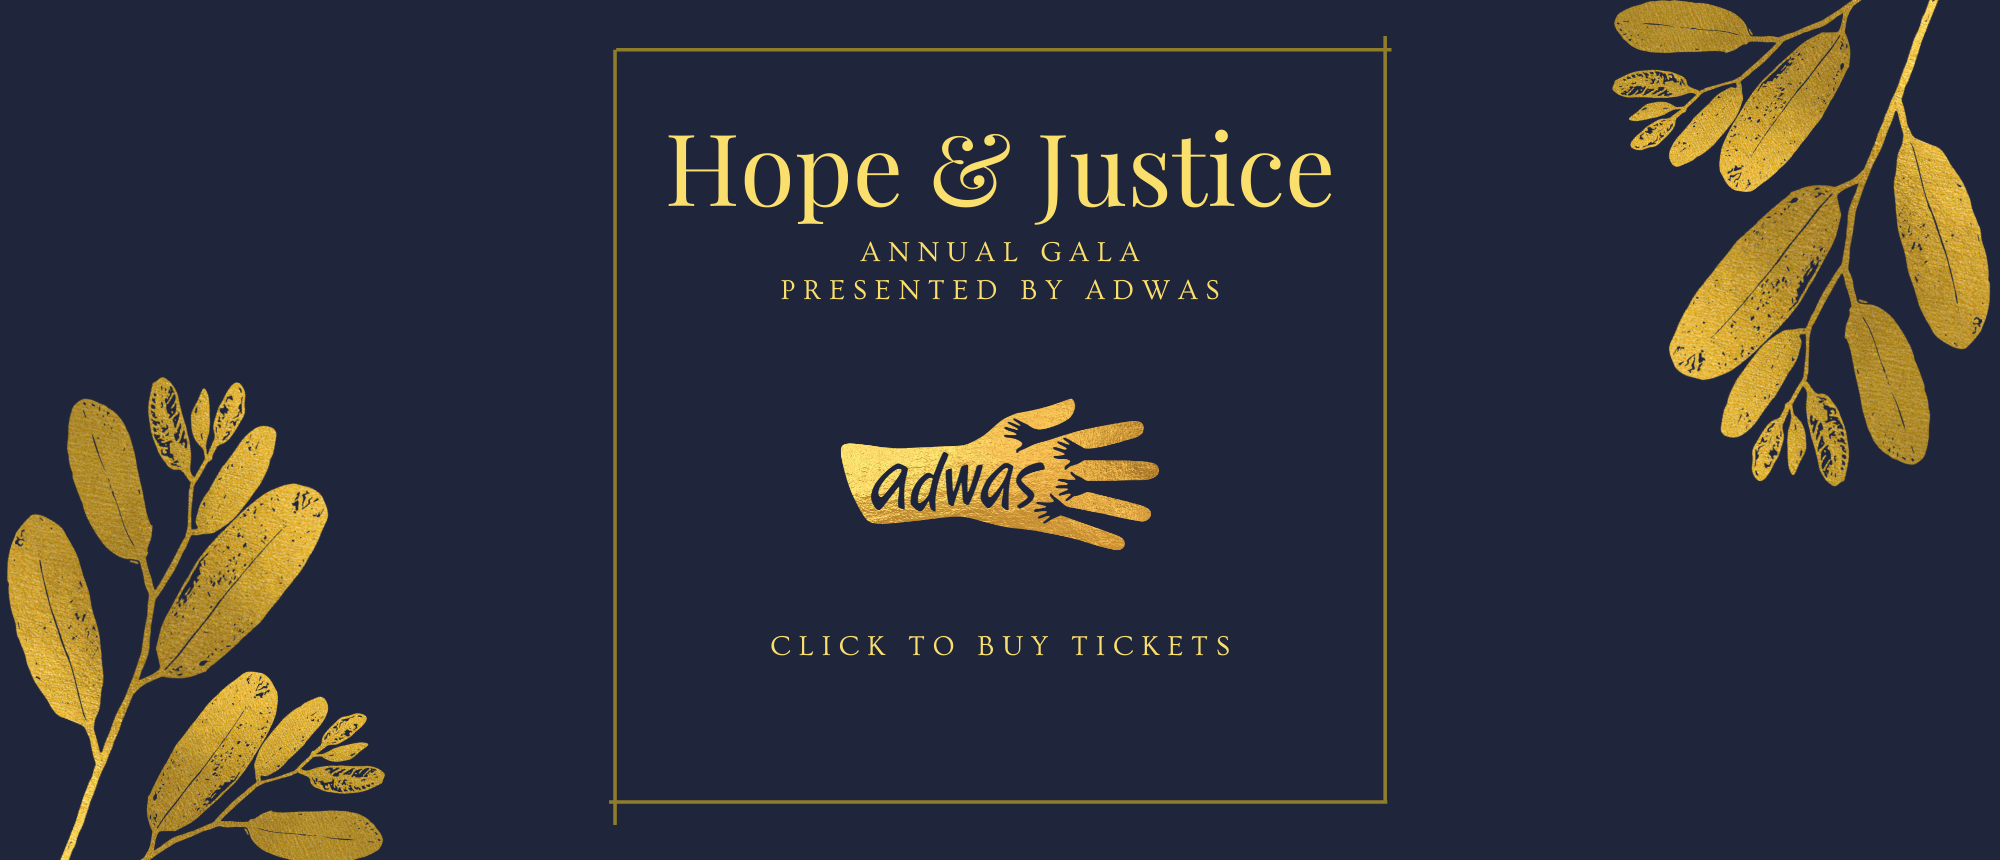 """A dark blue background with gold leaves in two of the corners. In the center, a golden square with golden text """"Hope & Justice / Annual Gala / Presented by ADWAS"""" Underneath this is the ADWAS Logo, but in golden colors. Underneath the logo in golden text """"Click to buy tickets"""""""